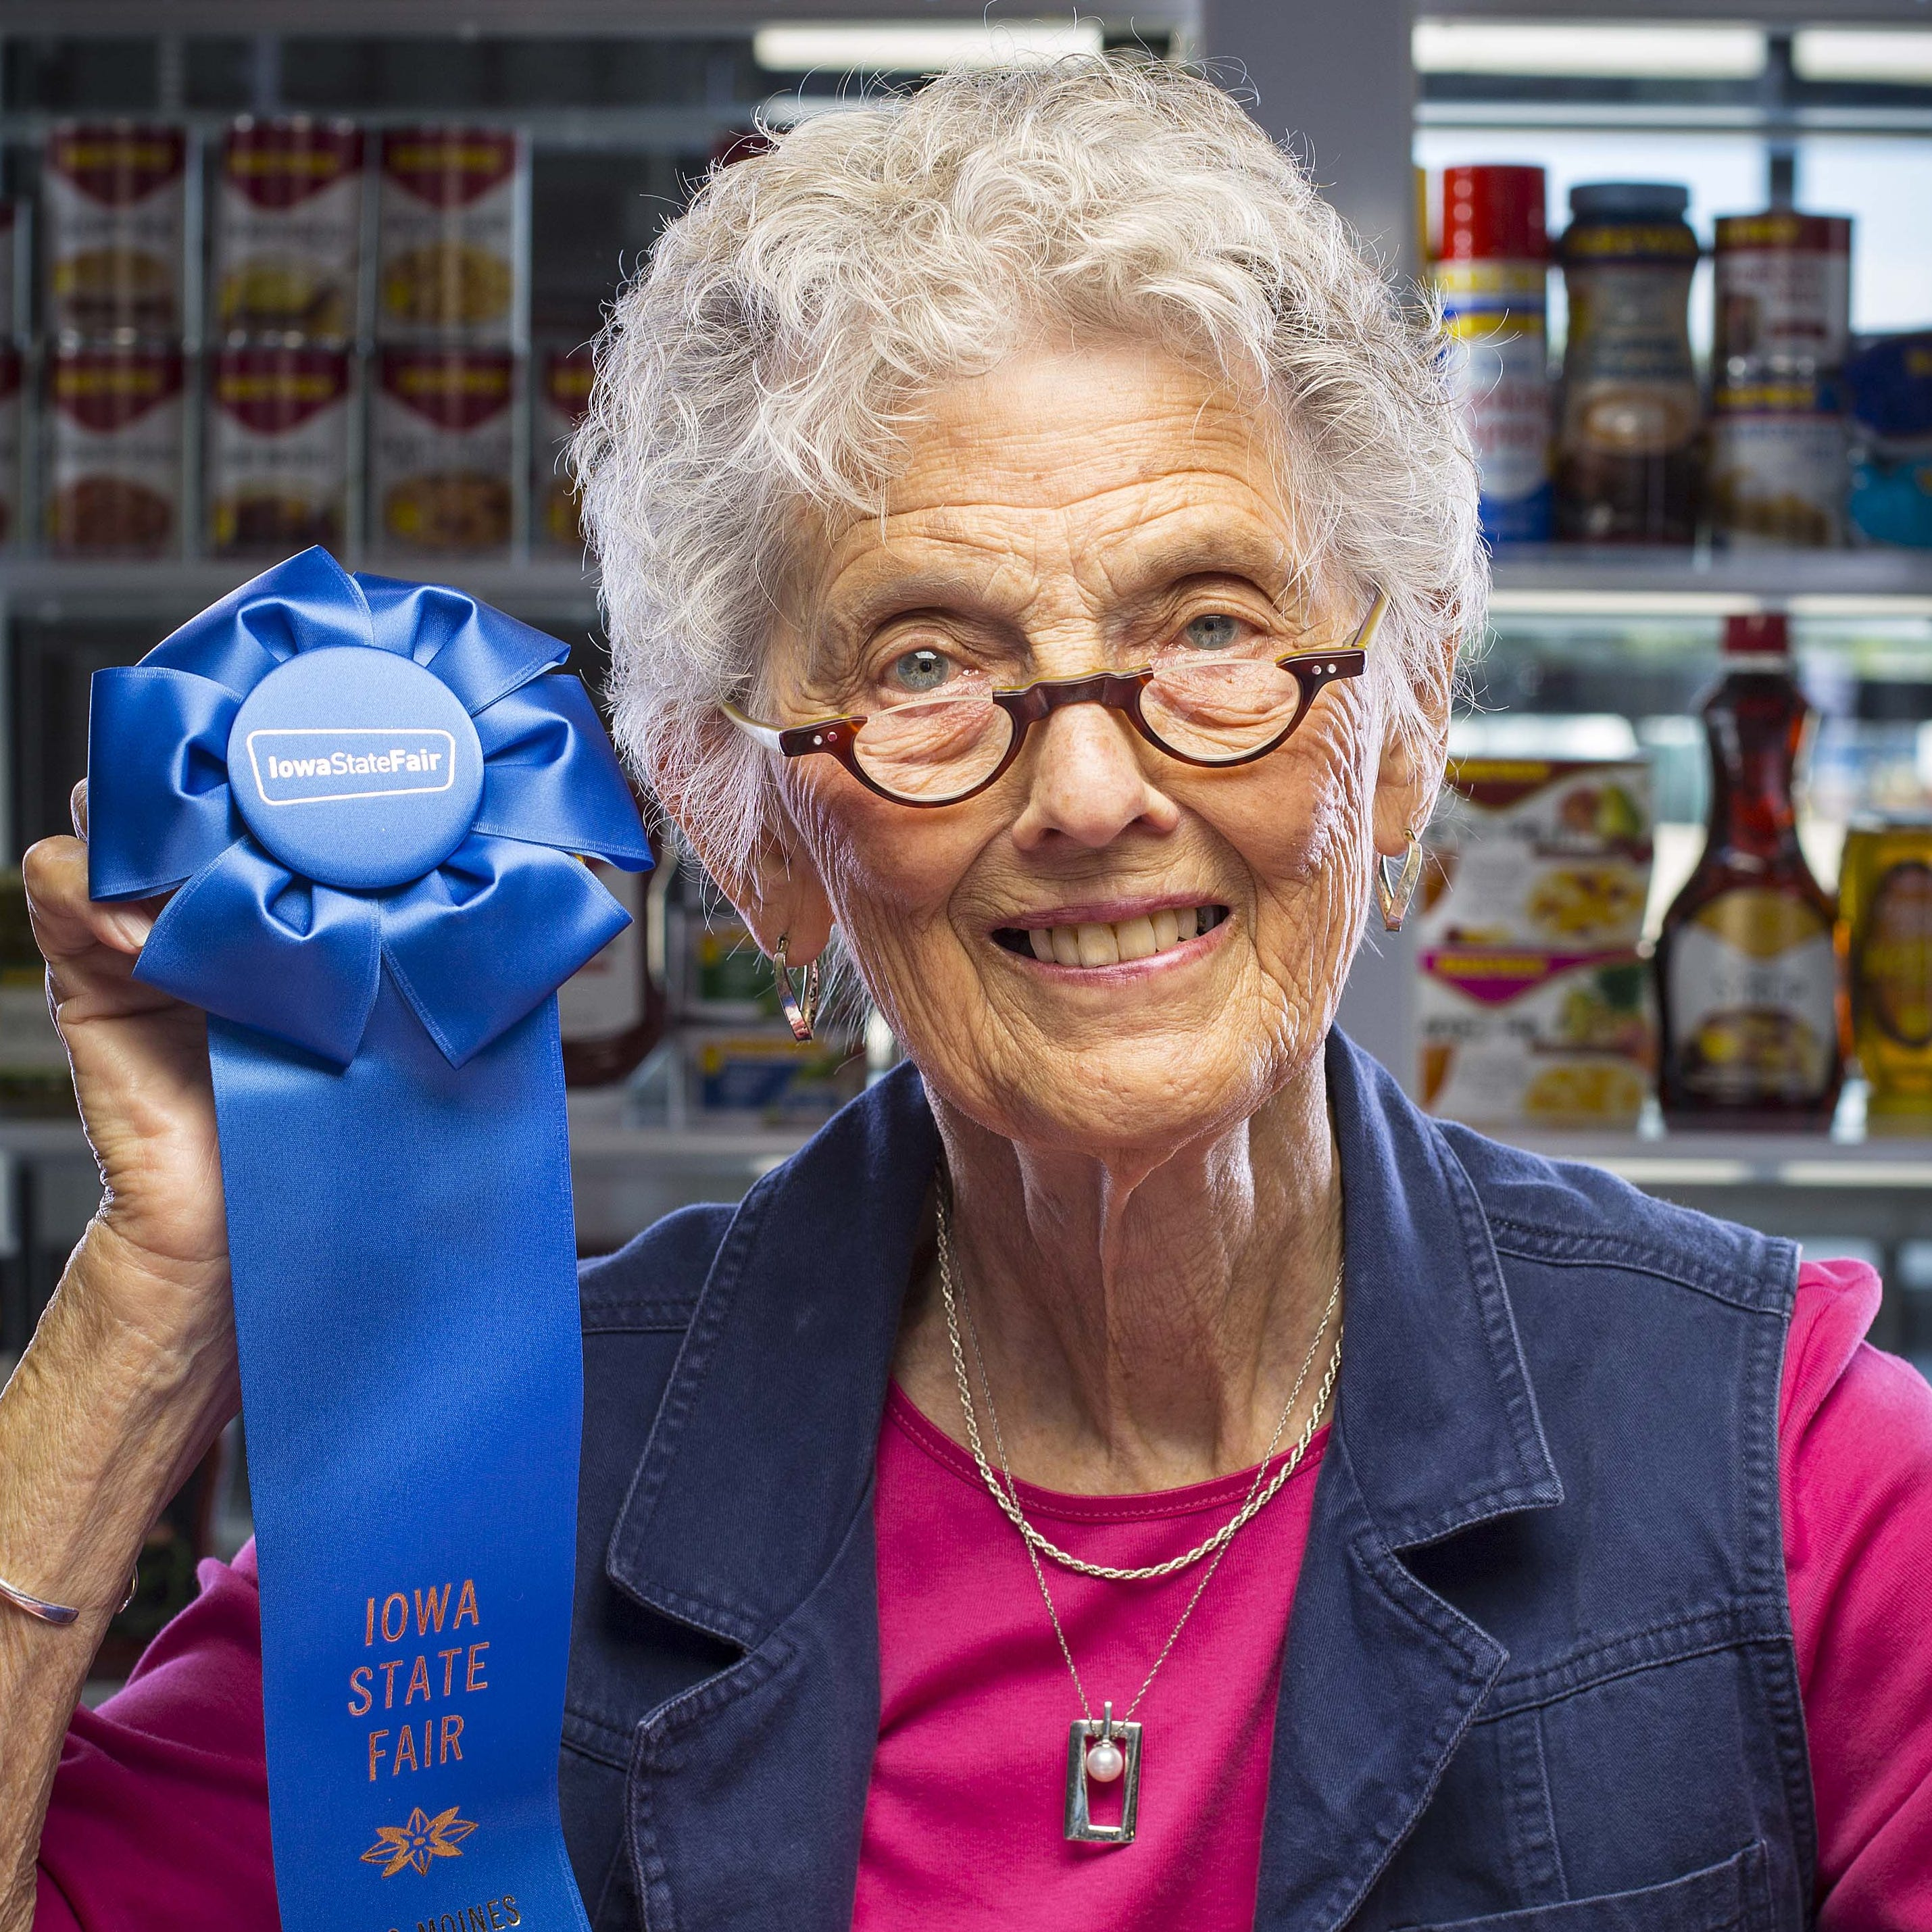 Saying goodbye to 'the fair lady': Arlette Hollister devoted her life to Iowa's blue-ribbon bakers